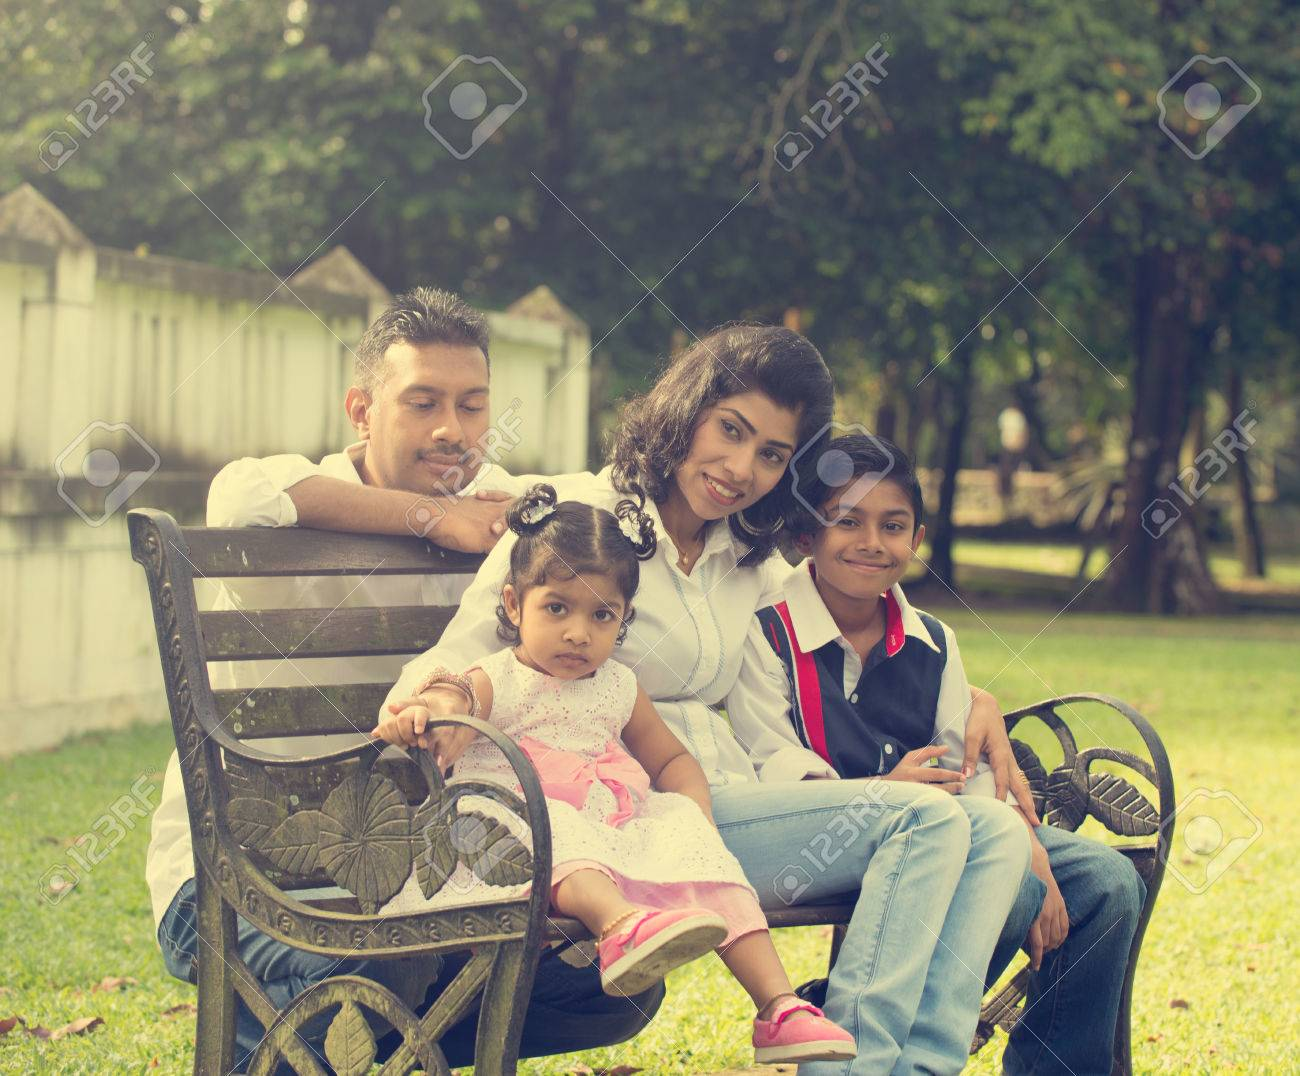 indian family enjoying quality time at outdoor park Stock Photo - 44643973